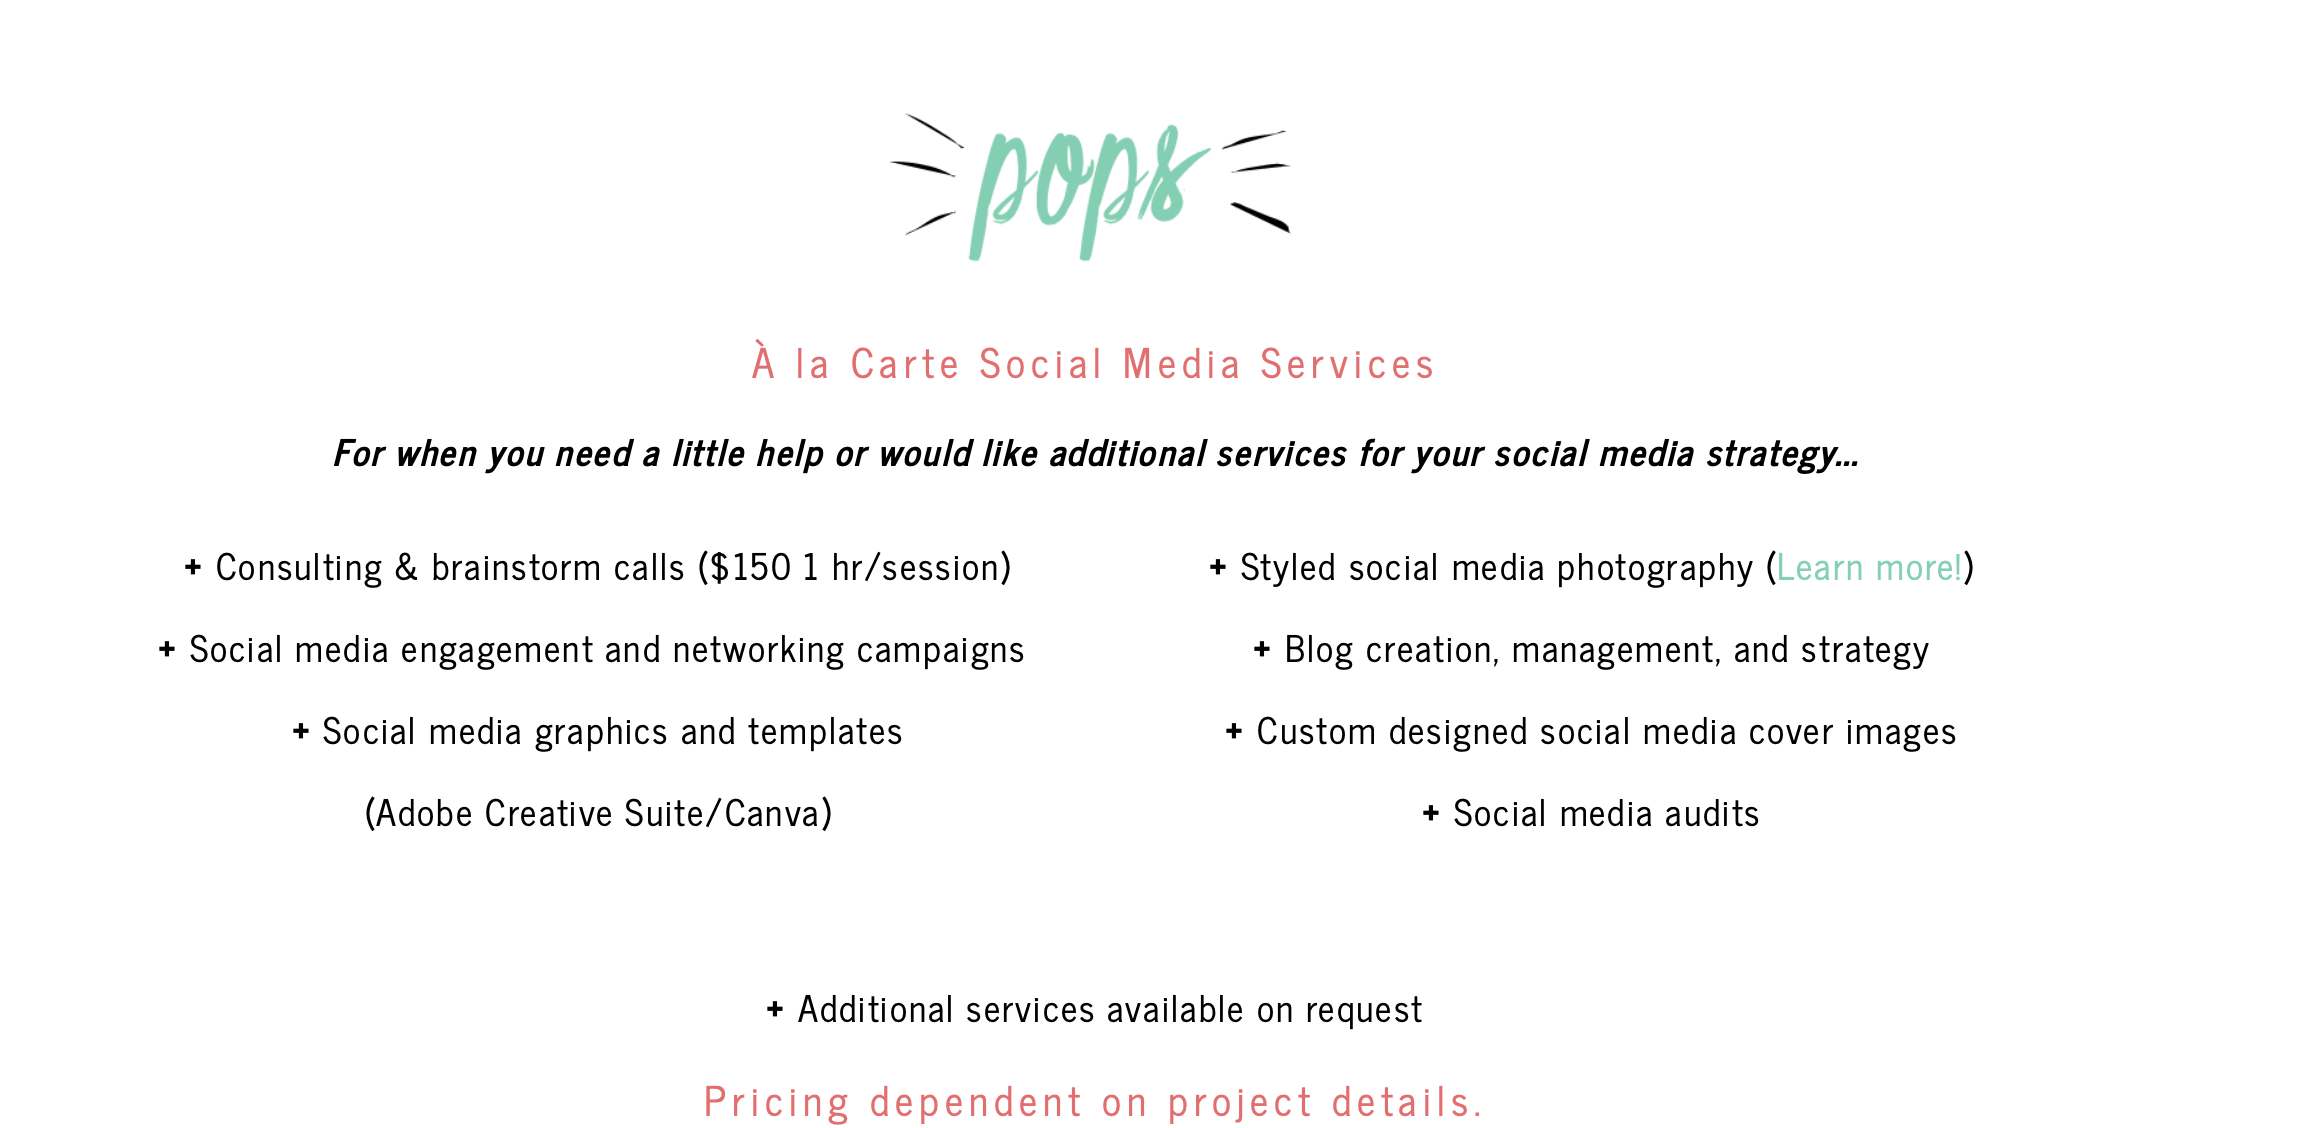 Bold and Pop's a la carte social media services